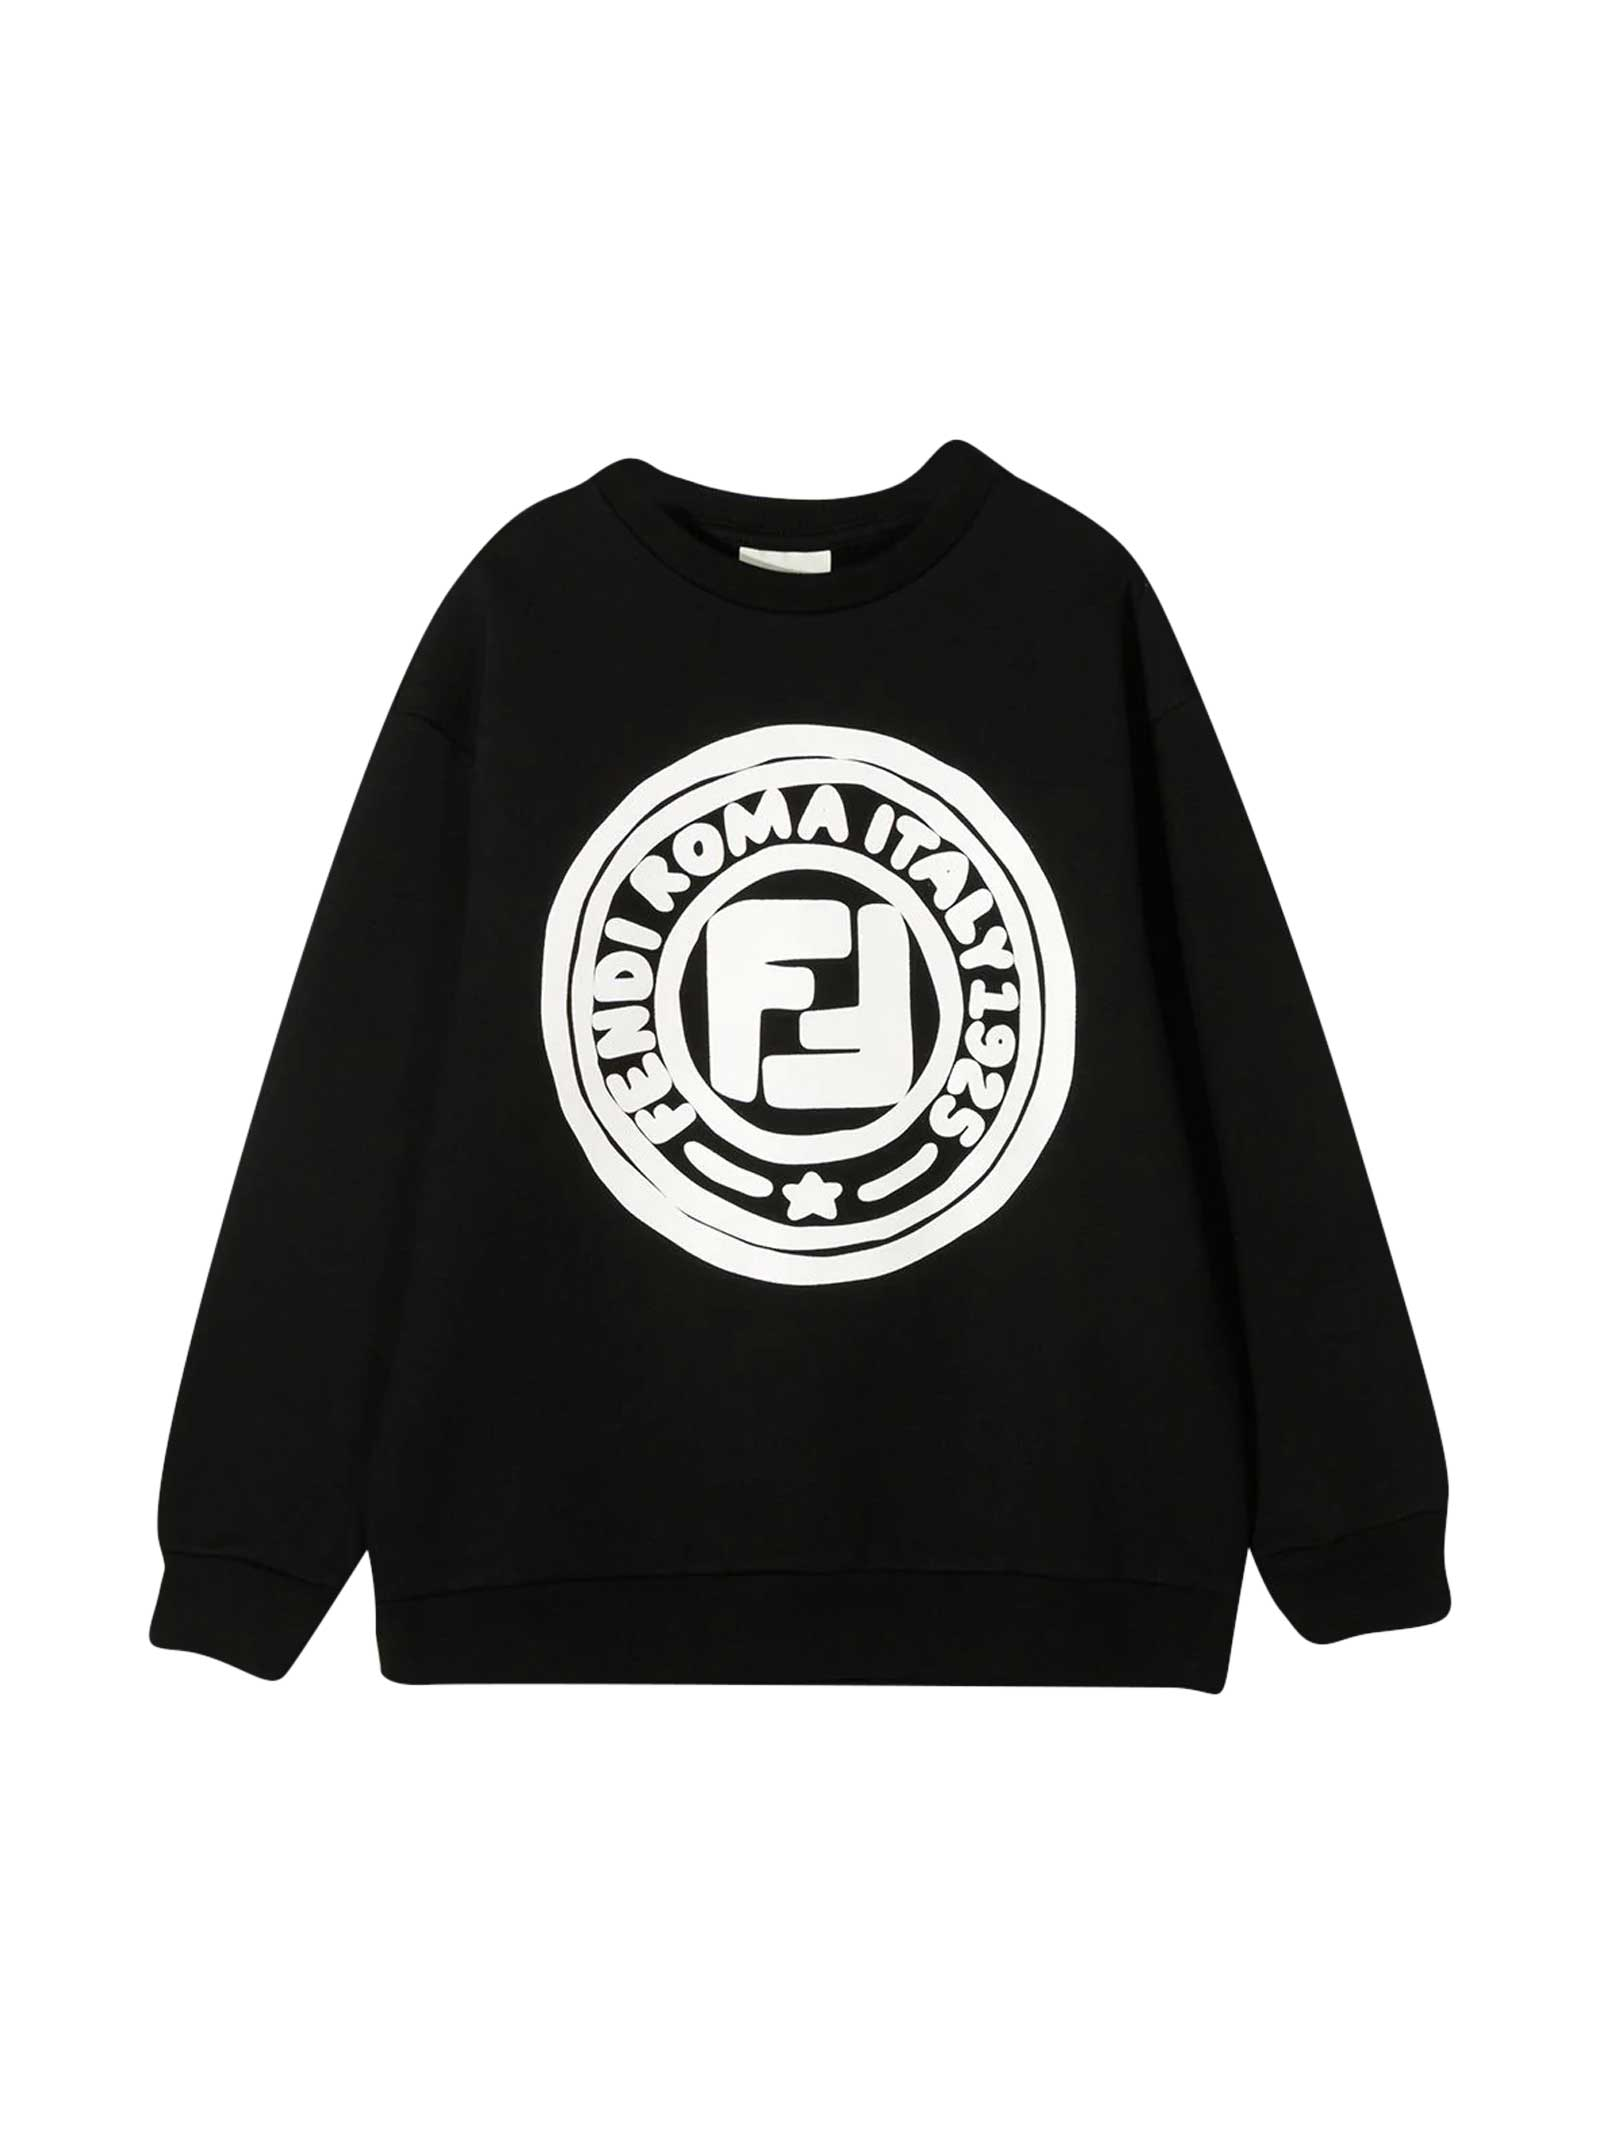 FENDI BLACK TEEN SWEATSHIRT WITH LOGO